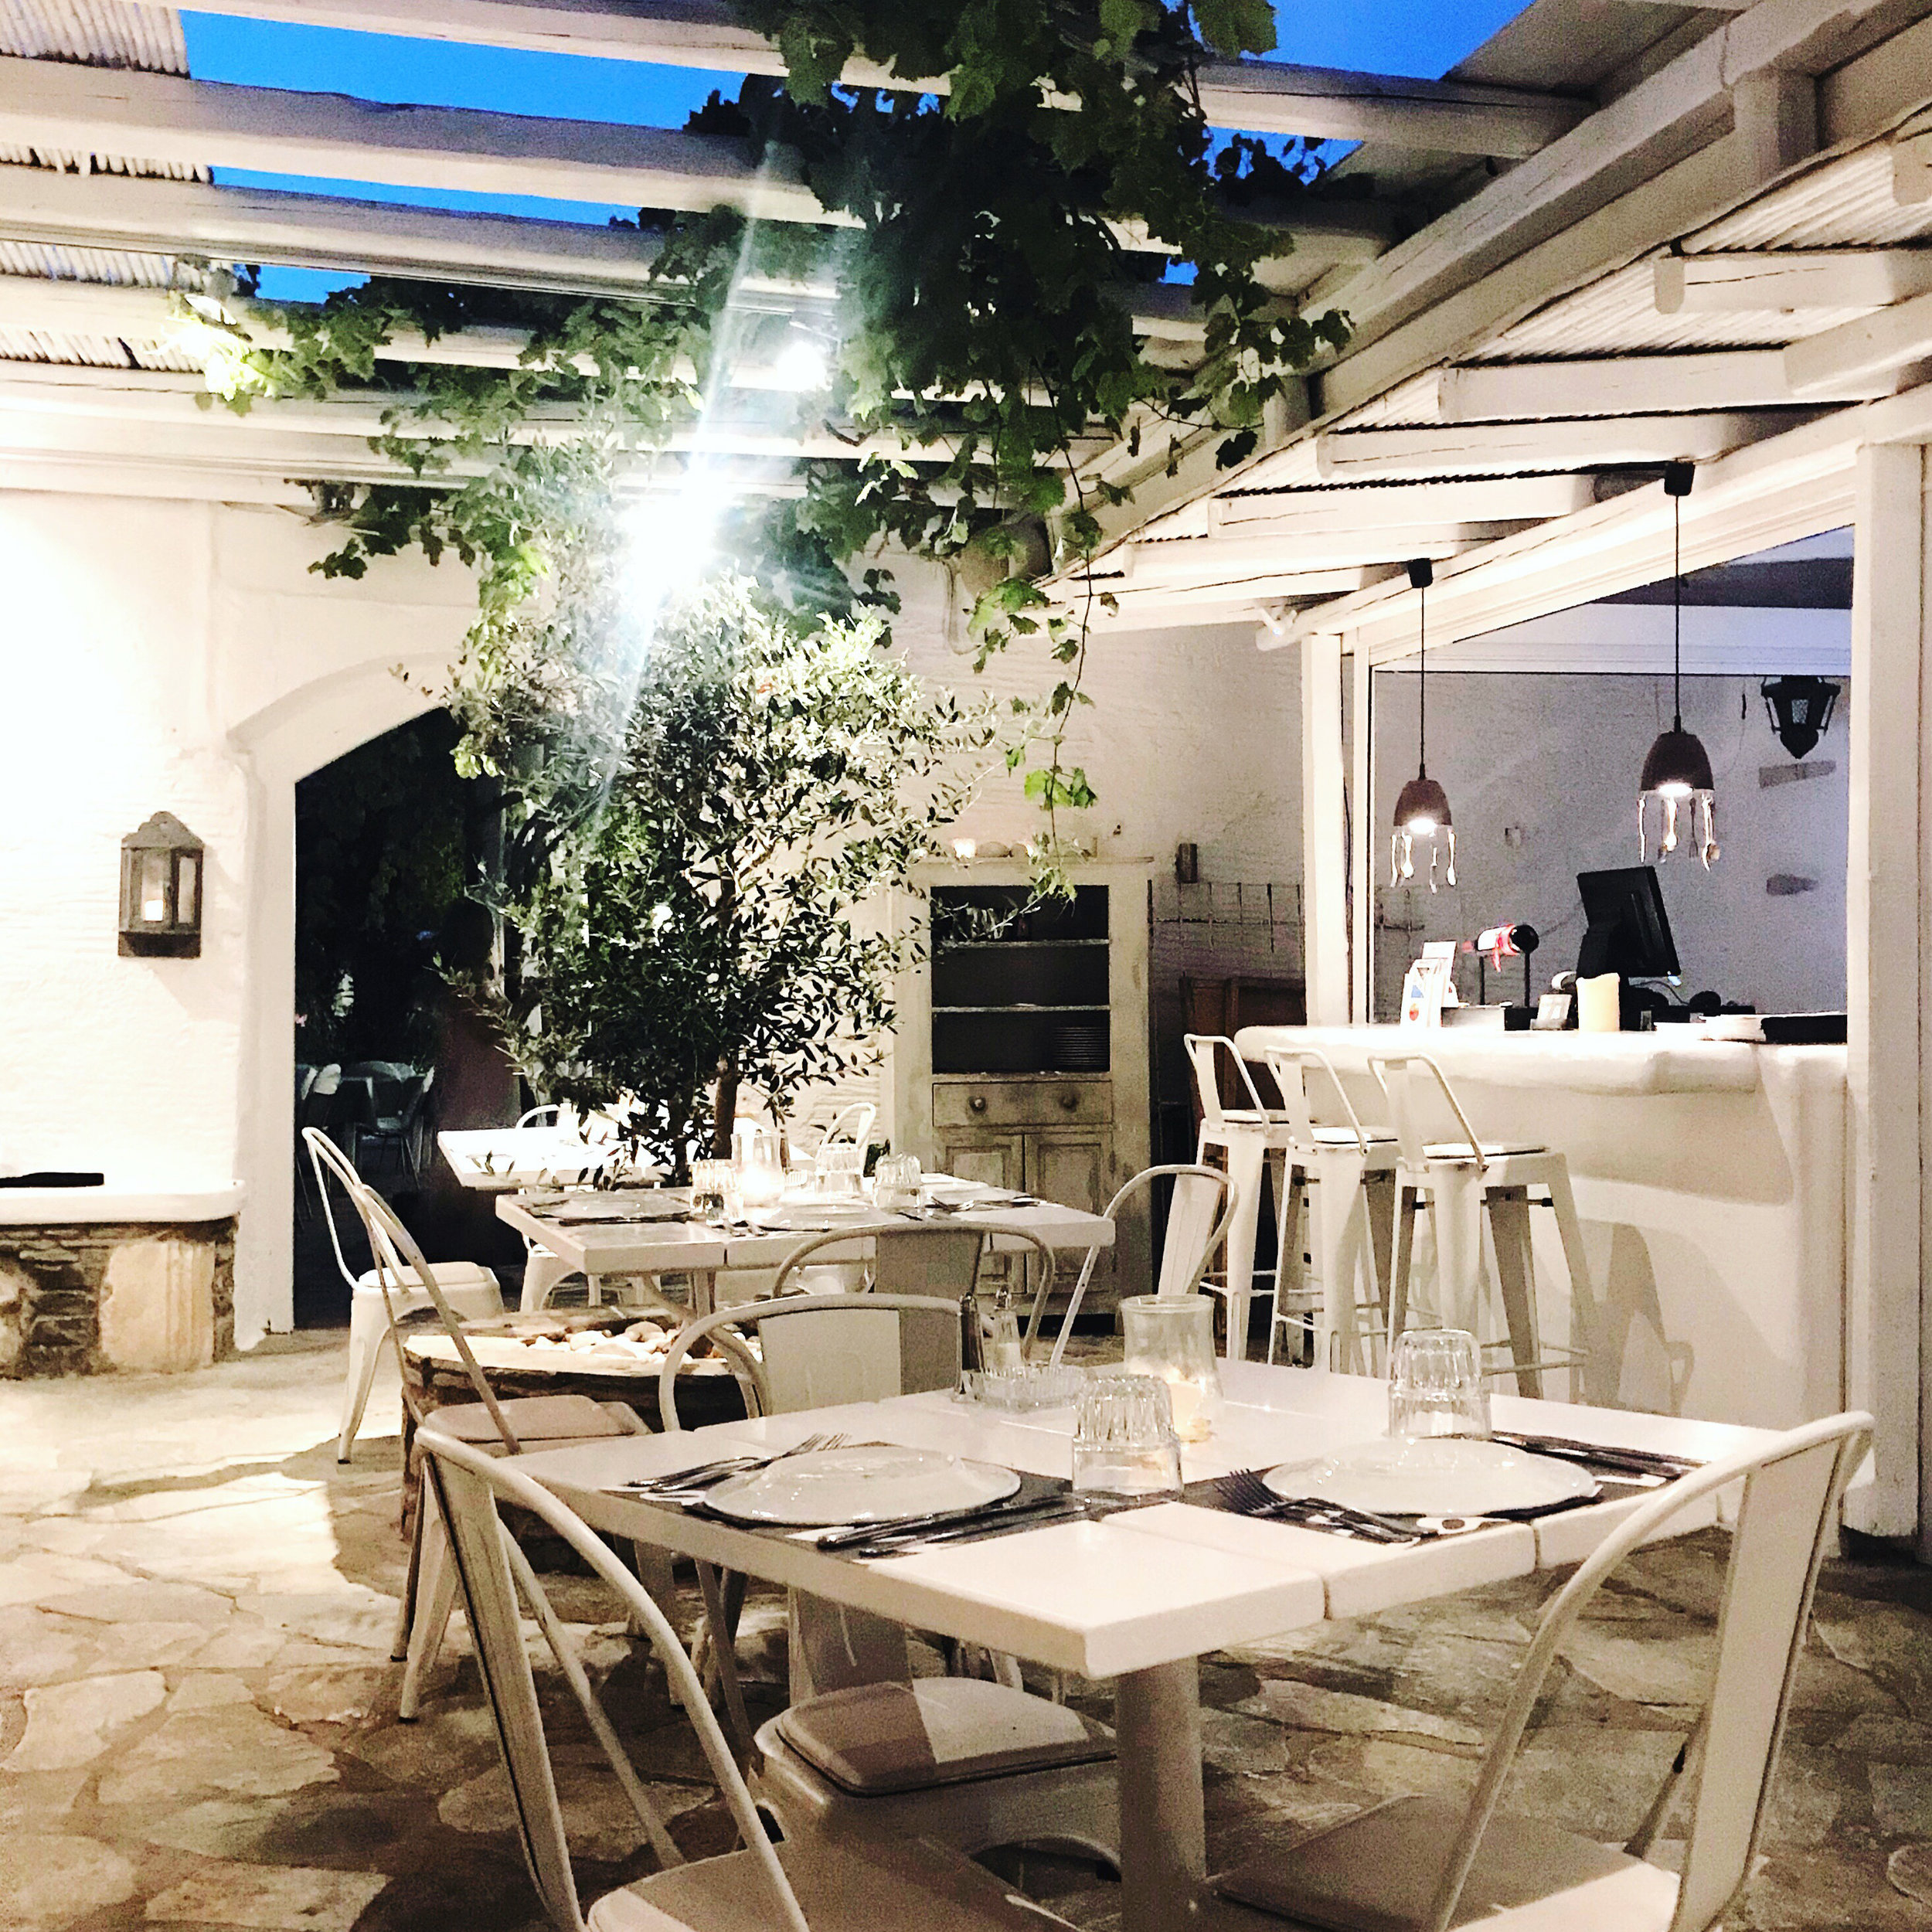 paros-parokia-greece-holiday-travel-blog-daphne-restaurant-review copy.jpg